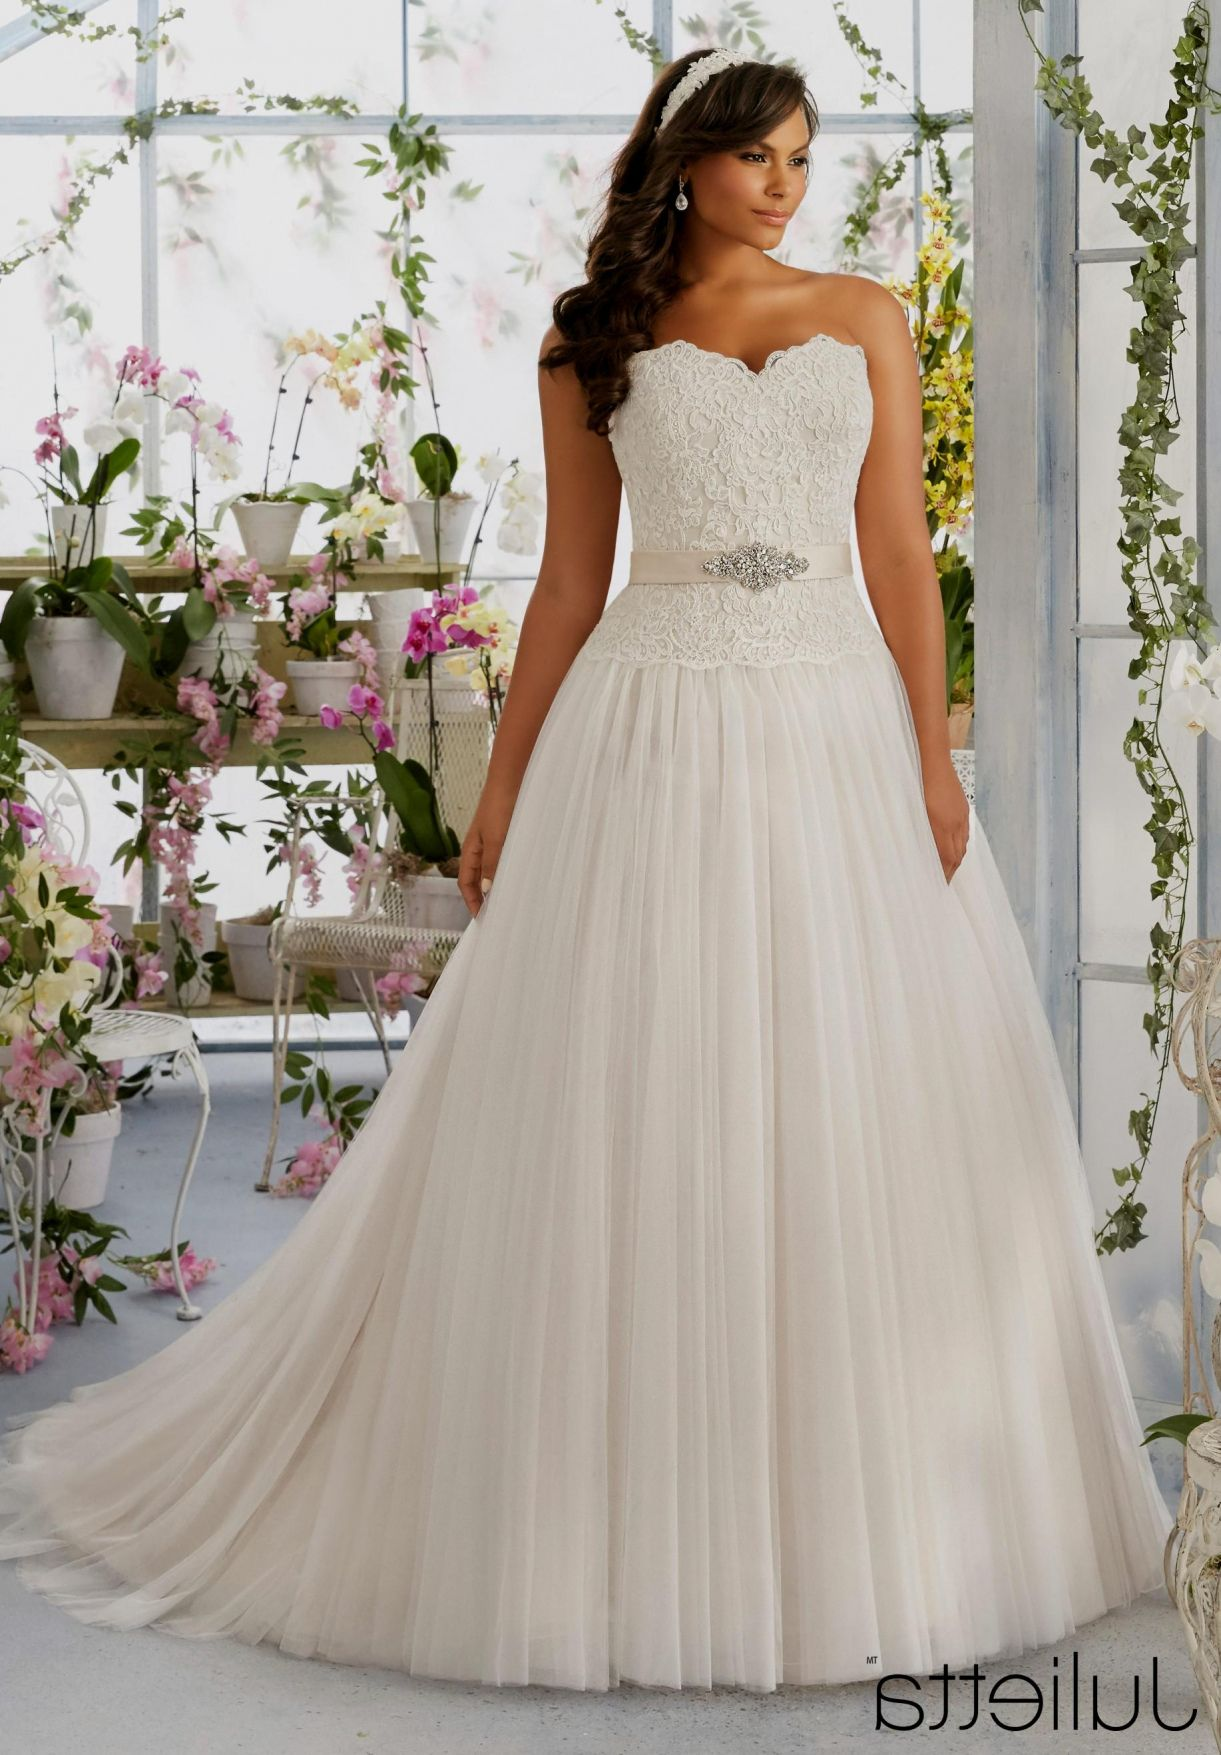 20 Plus Size Wedding Dresses Chicago For The Bride Check More